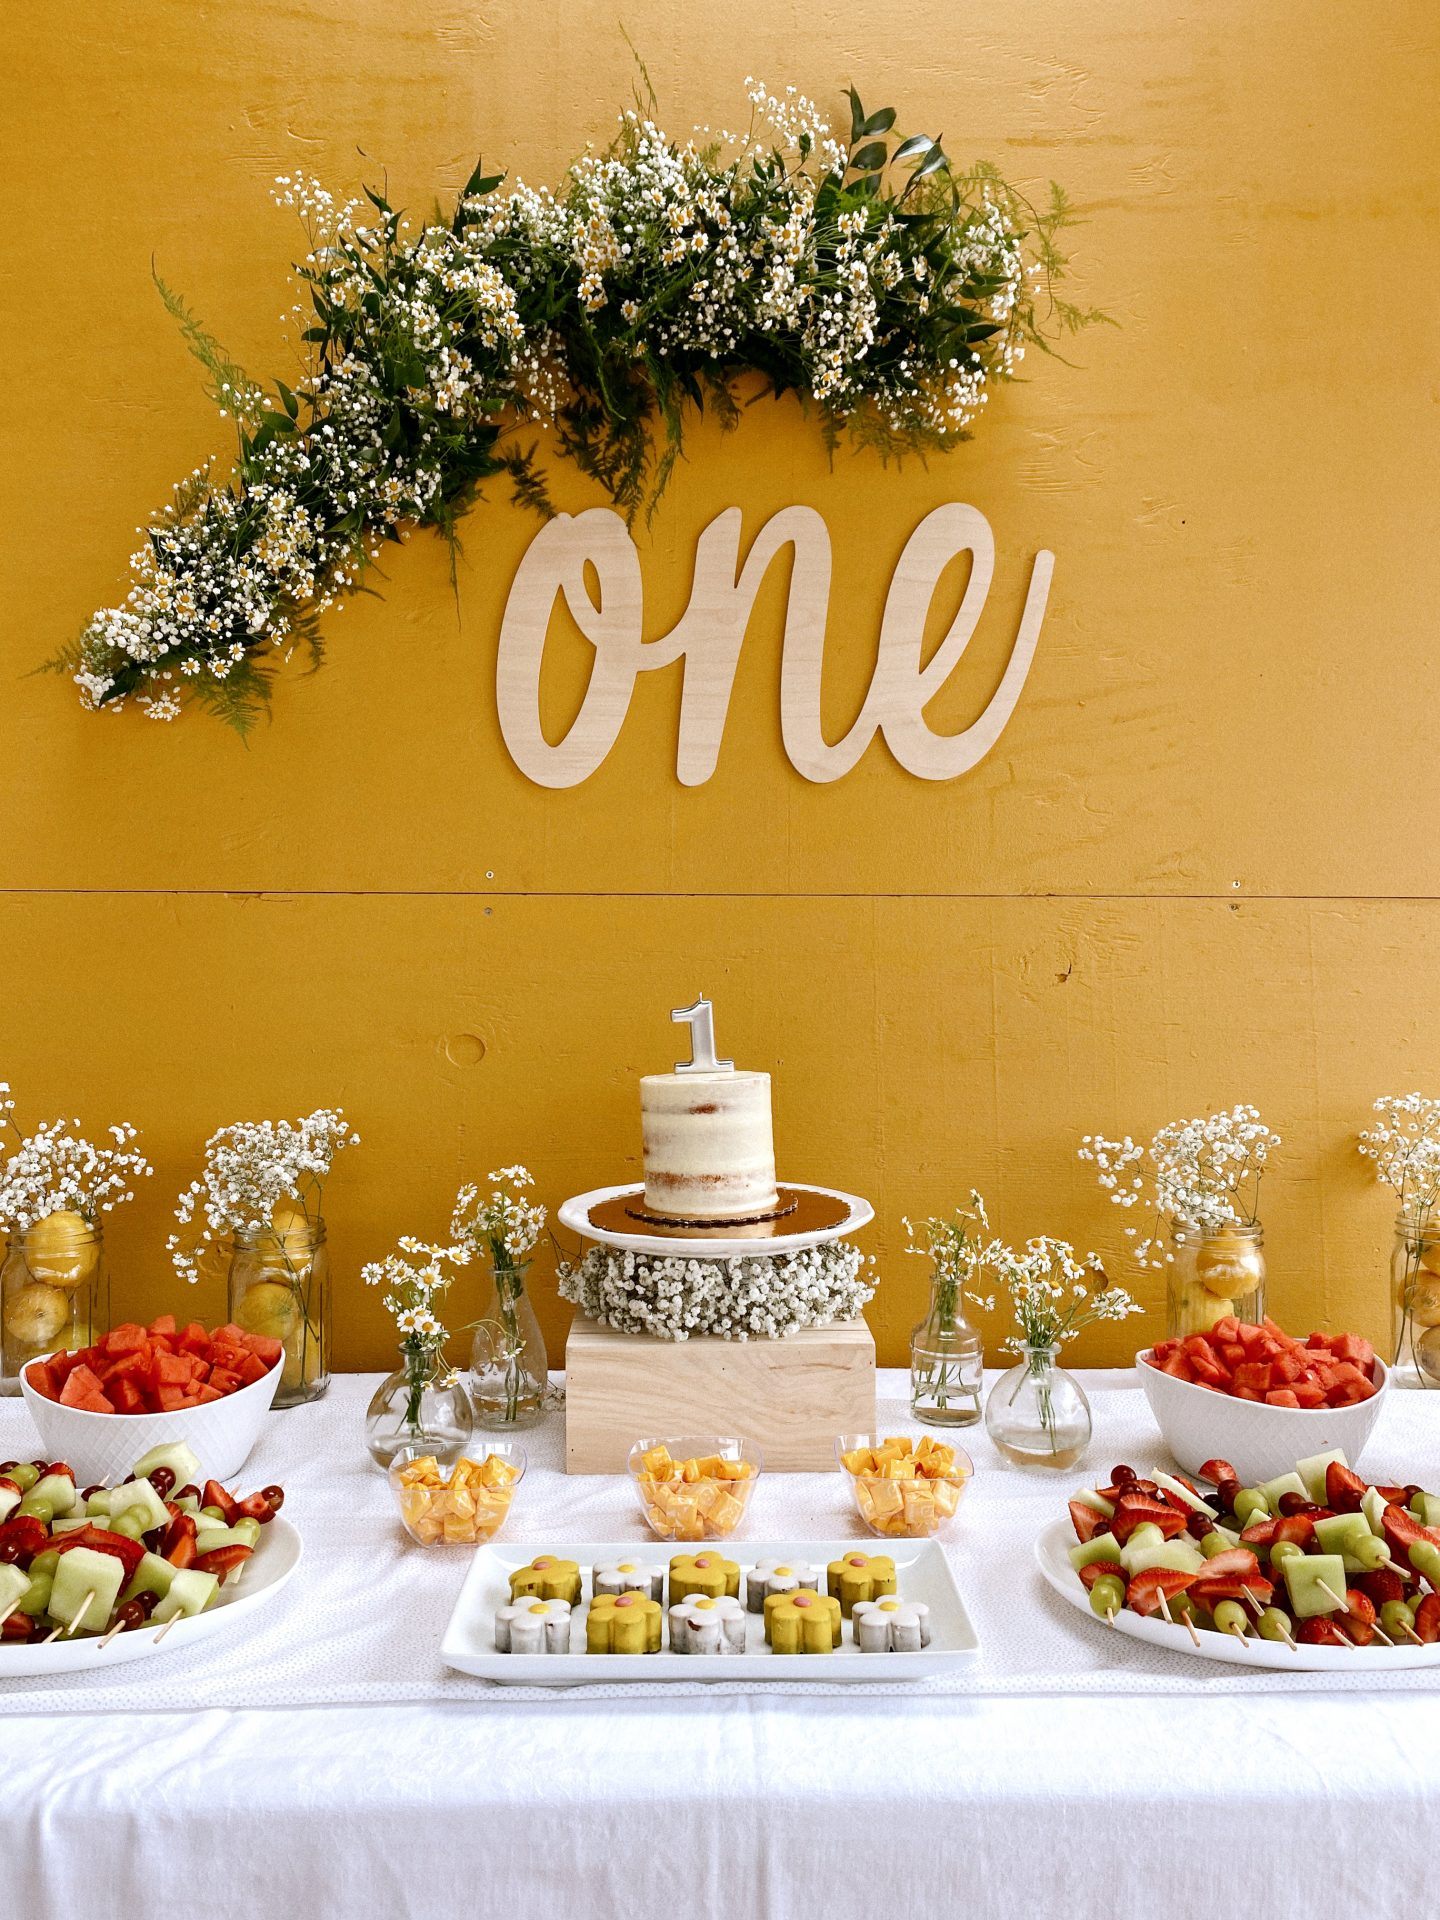 Daisy Theme Party by popular San Diego lifestyle blog, Navy Grace: image of a mustard yellow backdrop, wooden 'one' sign, daisy garland, and a food table with a cake, daisy shaped cakes, fruit skewers, vases filled with baby's breath and daisies, and daisy cupcakes.